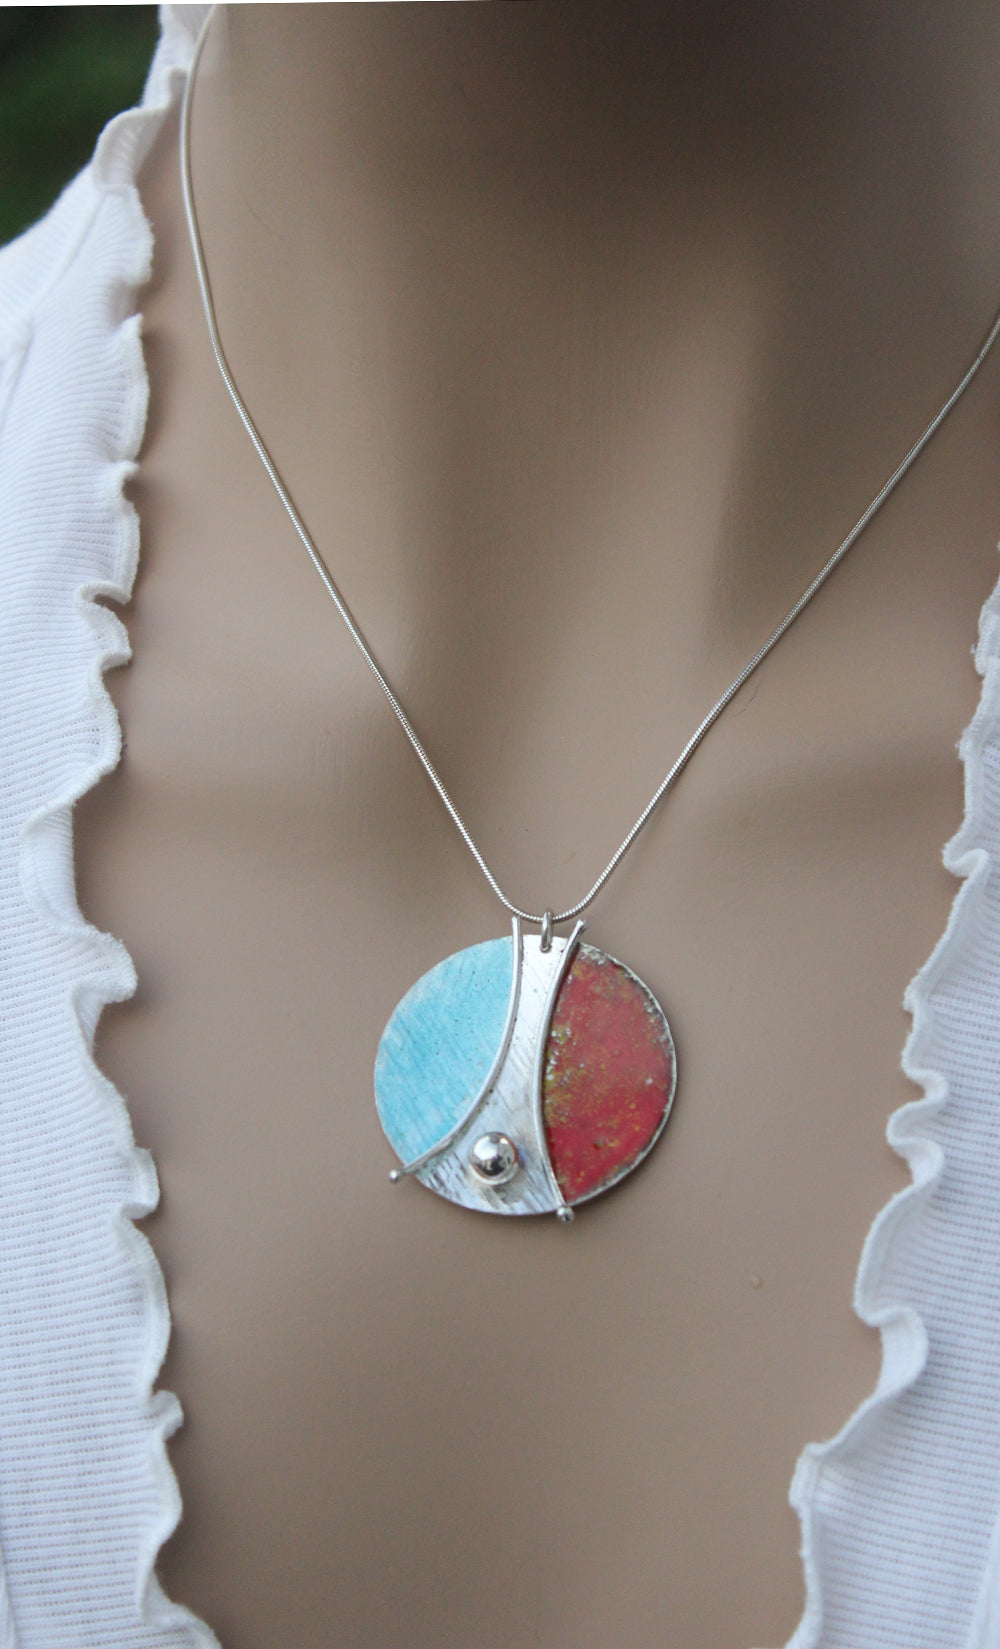 Blue Yellow Red Enamelled Sterling Silver Designer Necklace by Robert Spotten